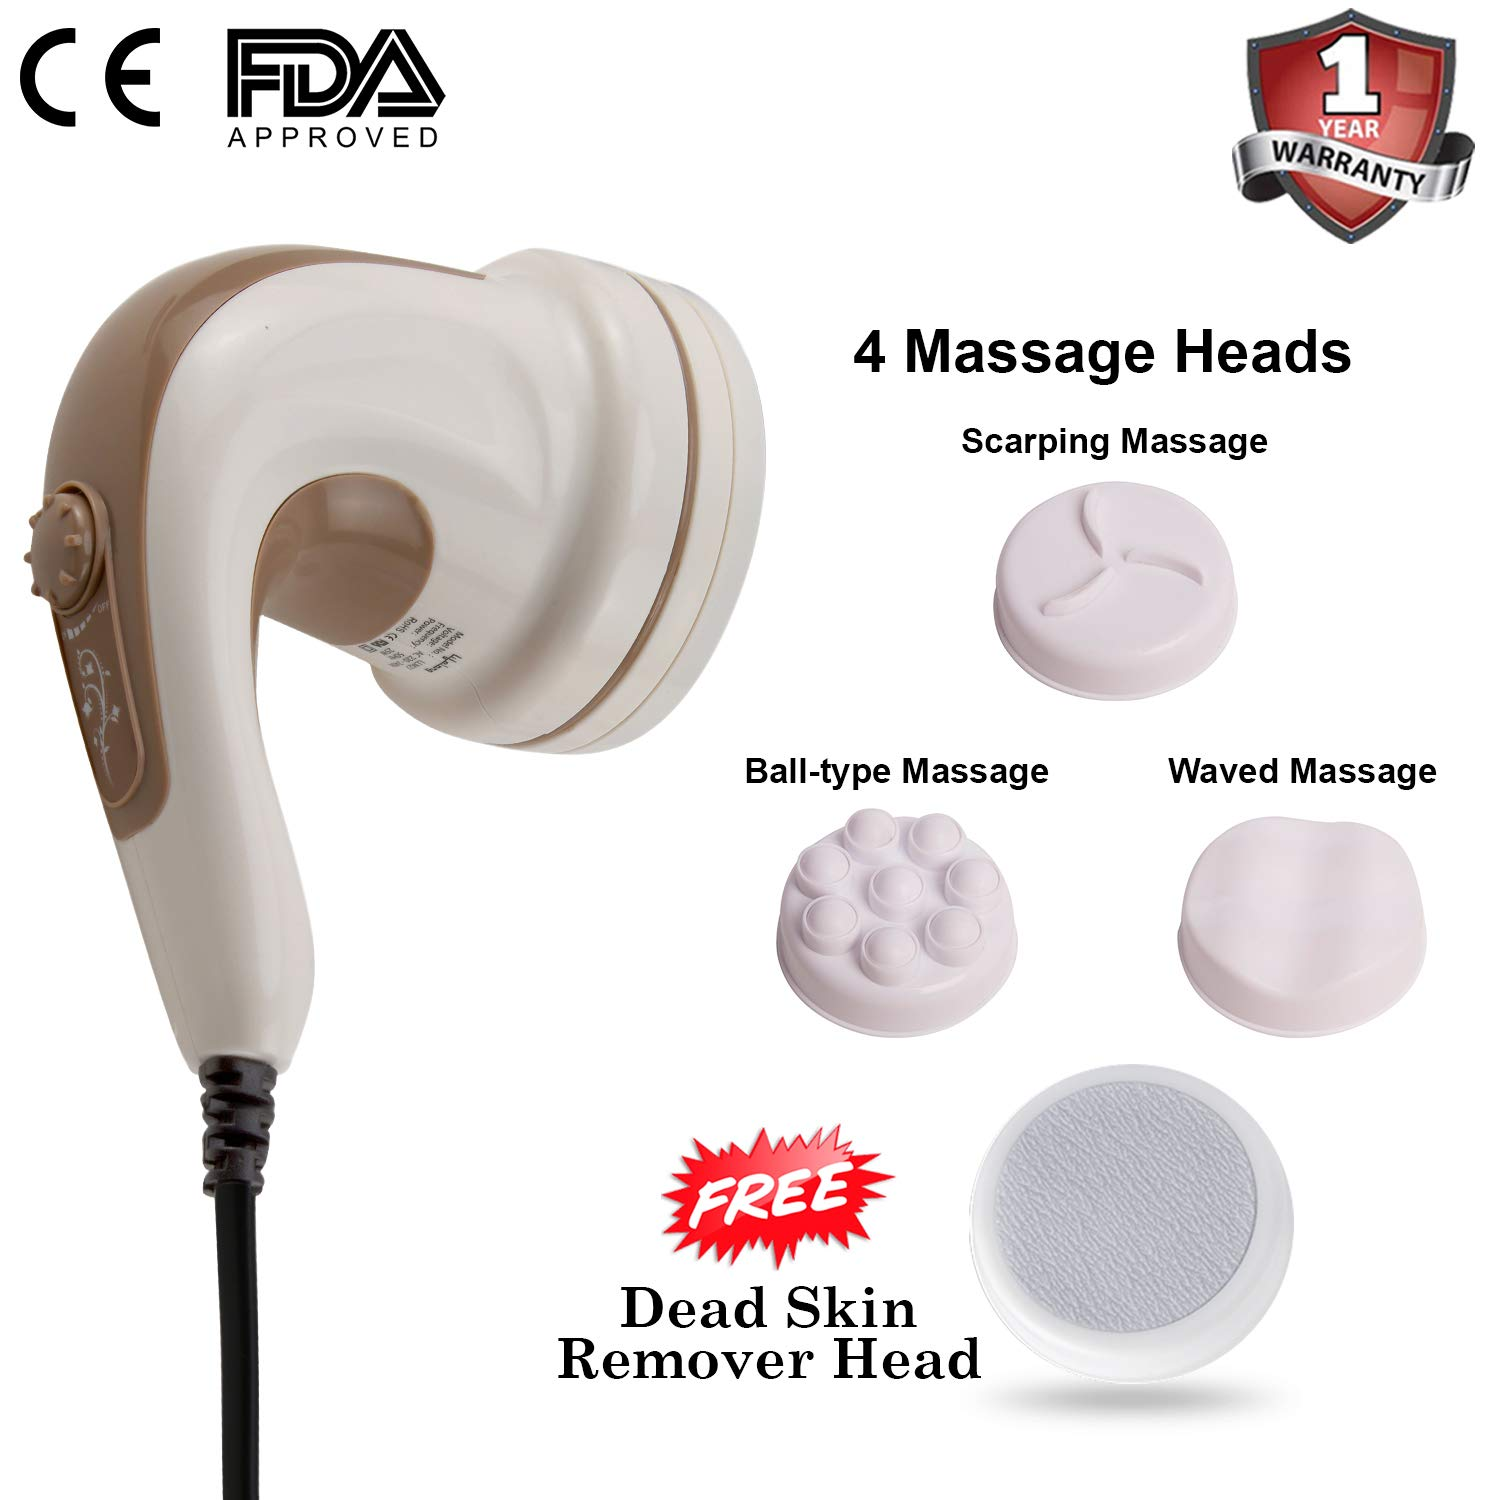 Lifelong Electric Handheld LLM27 Full Body Massager